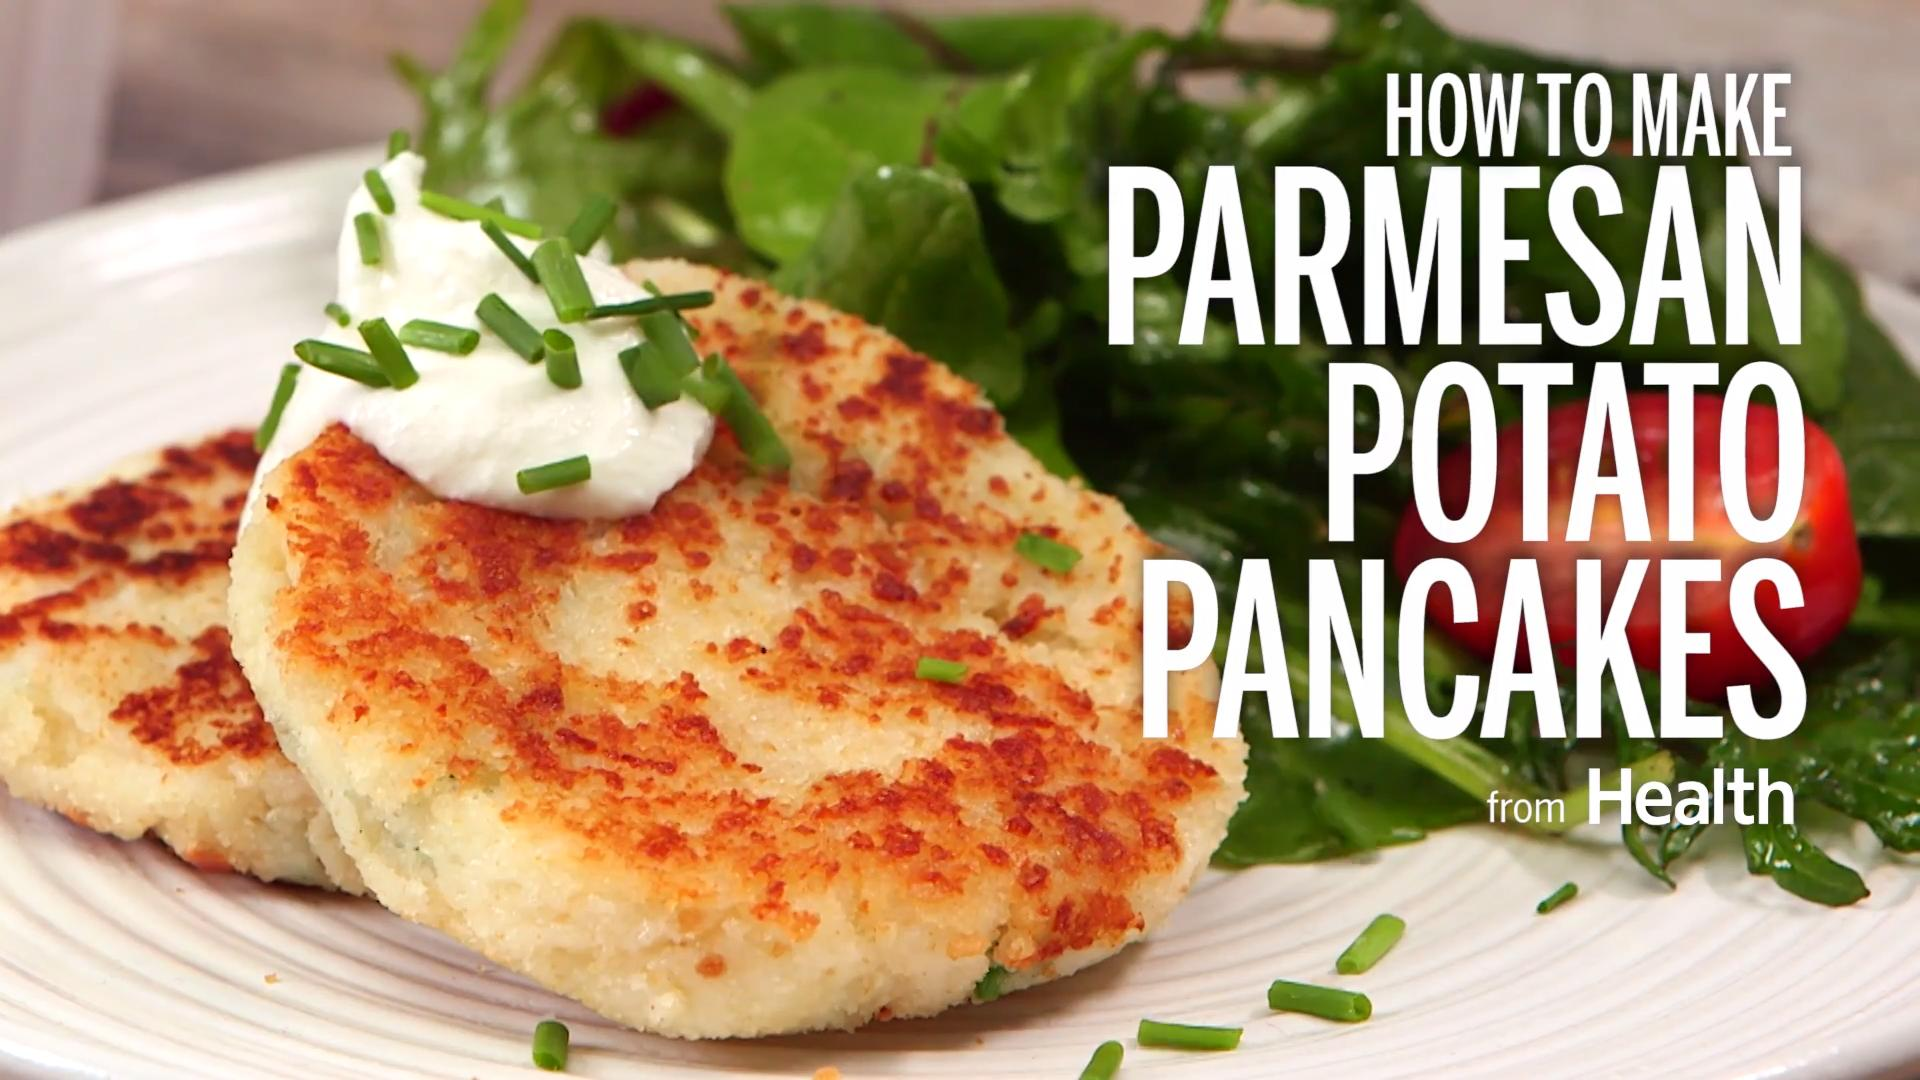 Parmesan potato pancakes recipe health ccuart